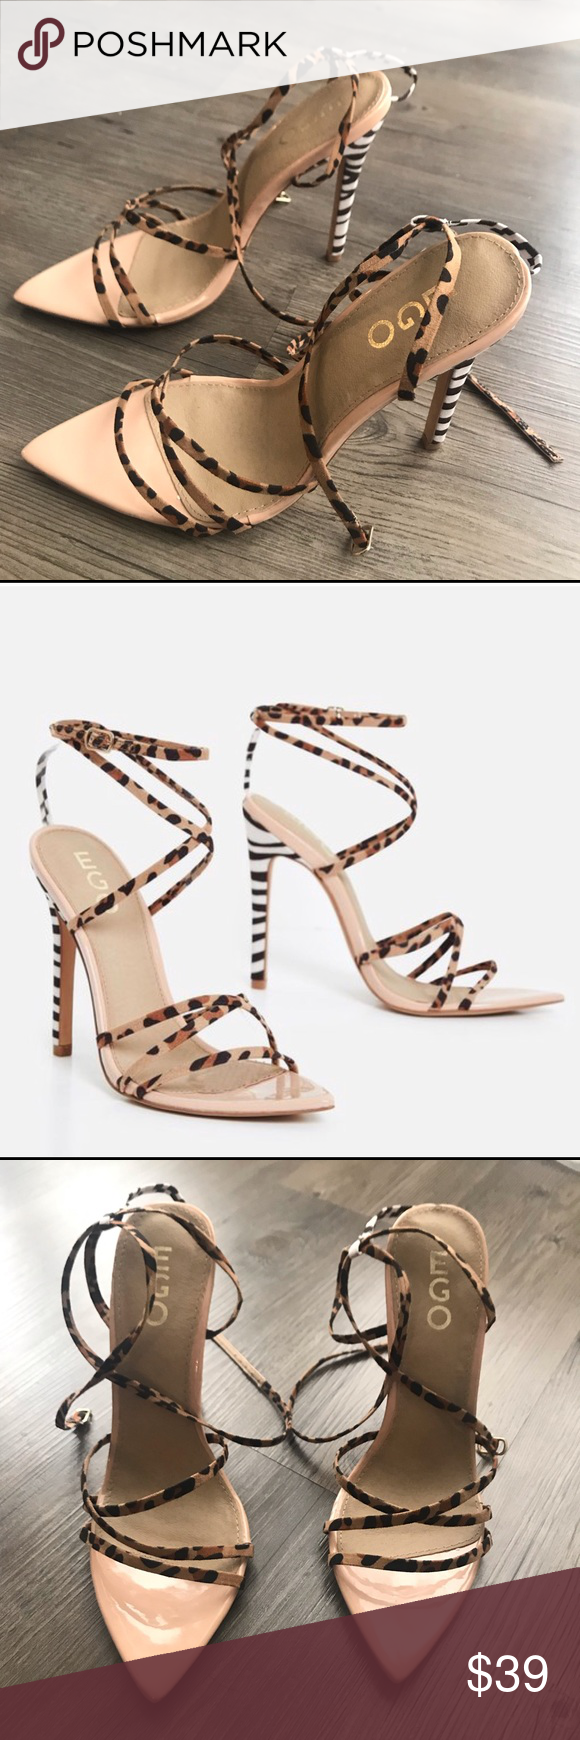 caaa2f0e0000 Leopard Zebra Barely There Strappy Heel size US 8 A combo of two animal  prints, strappy detail, stiletto heel and a must have pointed toe.